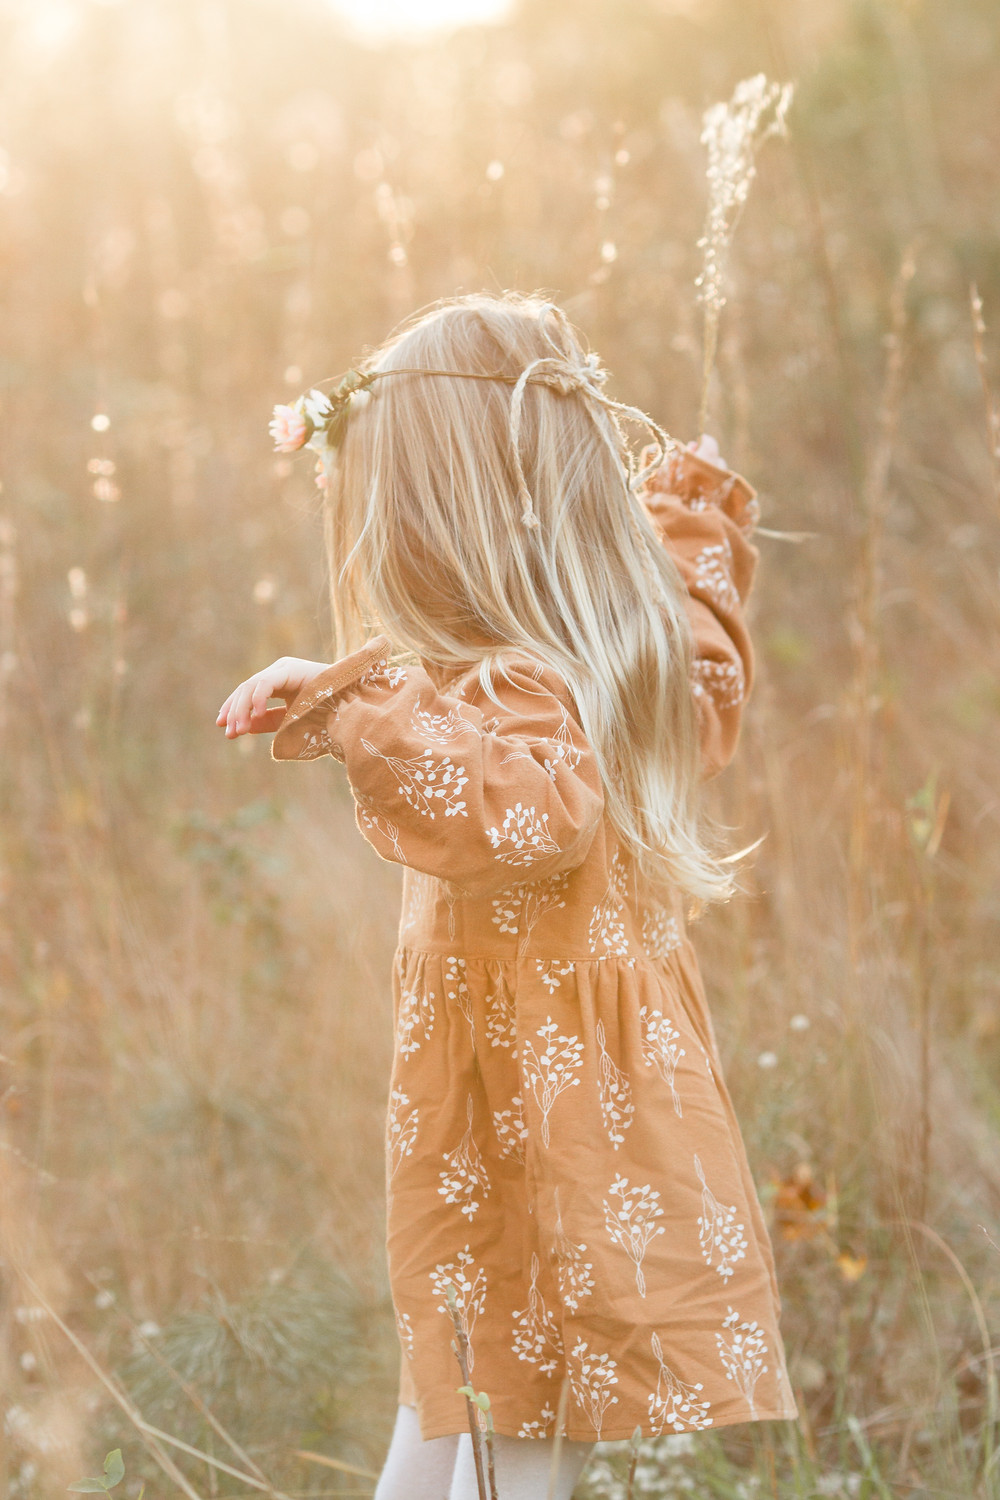 Rear view of little girl dancing in a grassy field wearing a flower crown, London Adelaide family photography, Asheville family photographers, tips for planning family photos, lifestyle blog